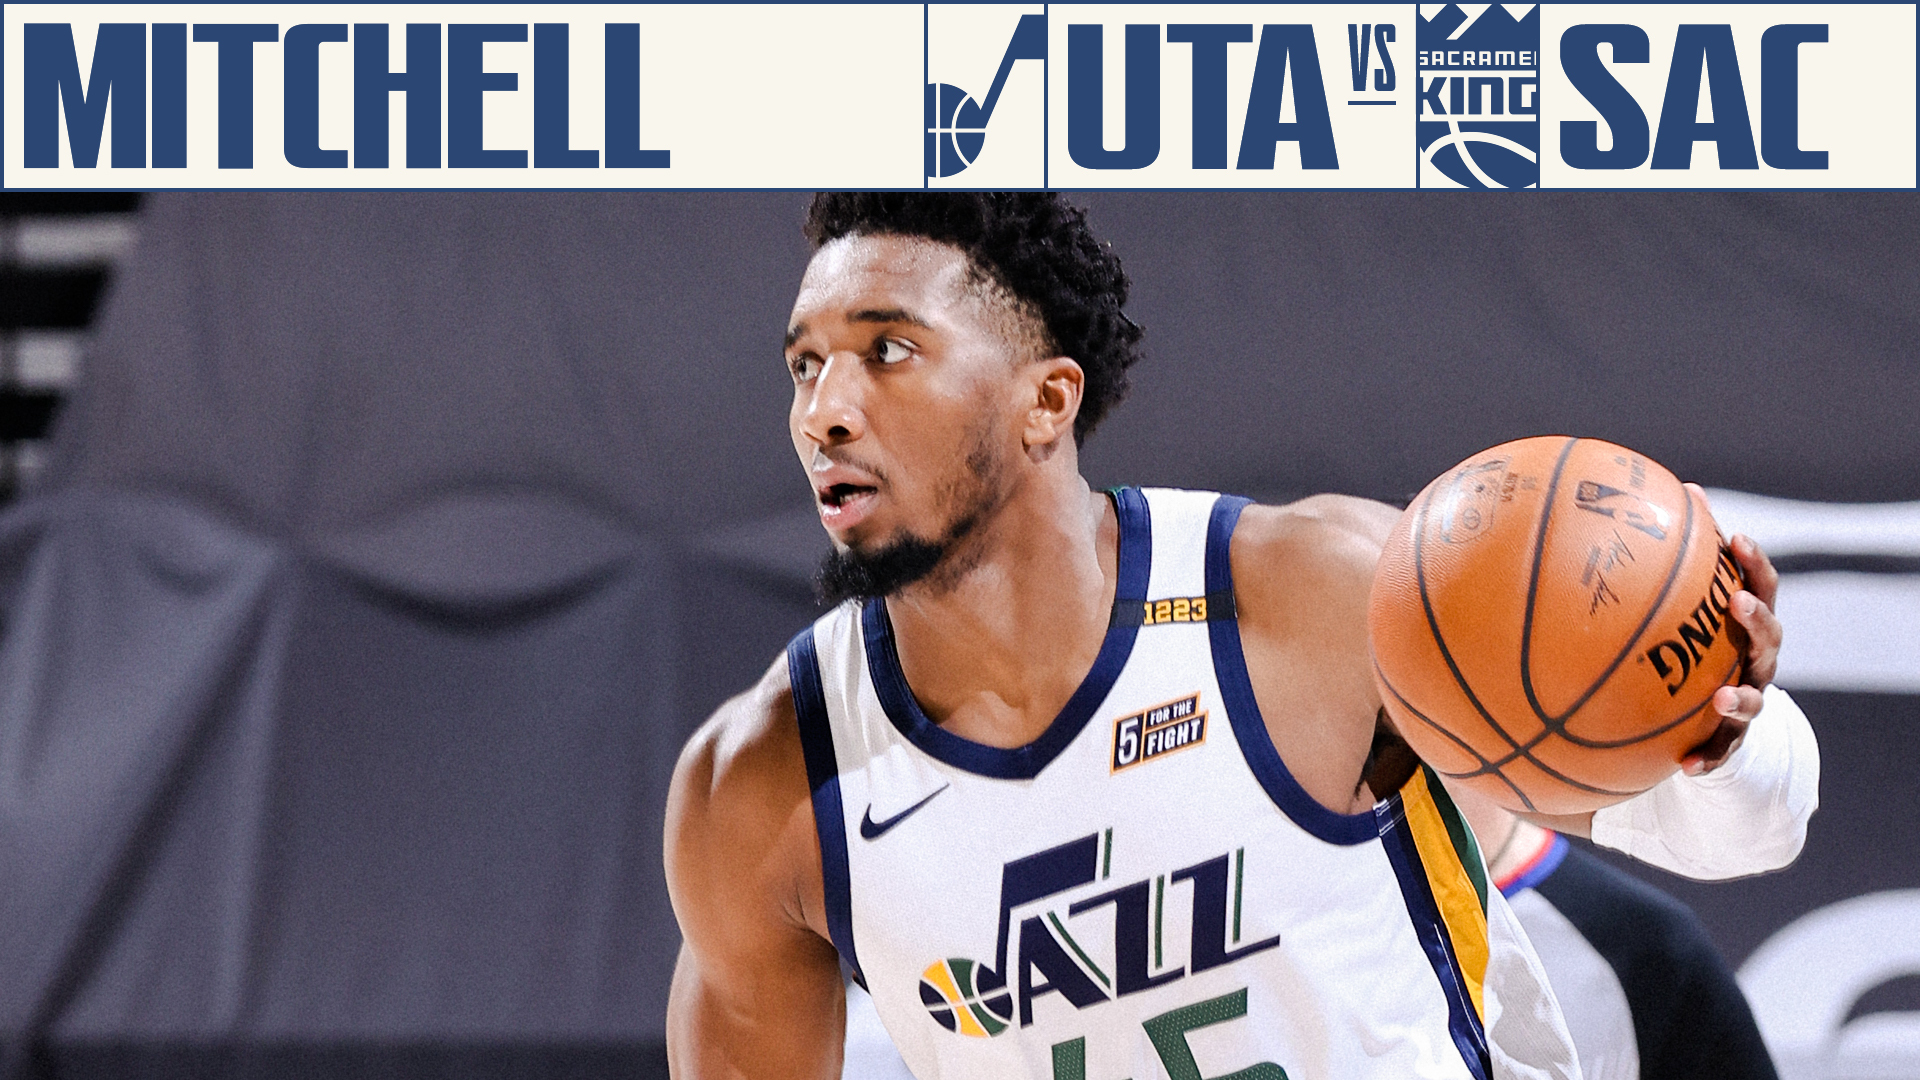 Highlights: Donovan Mitchell — 42 points, 4 assists